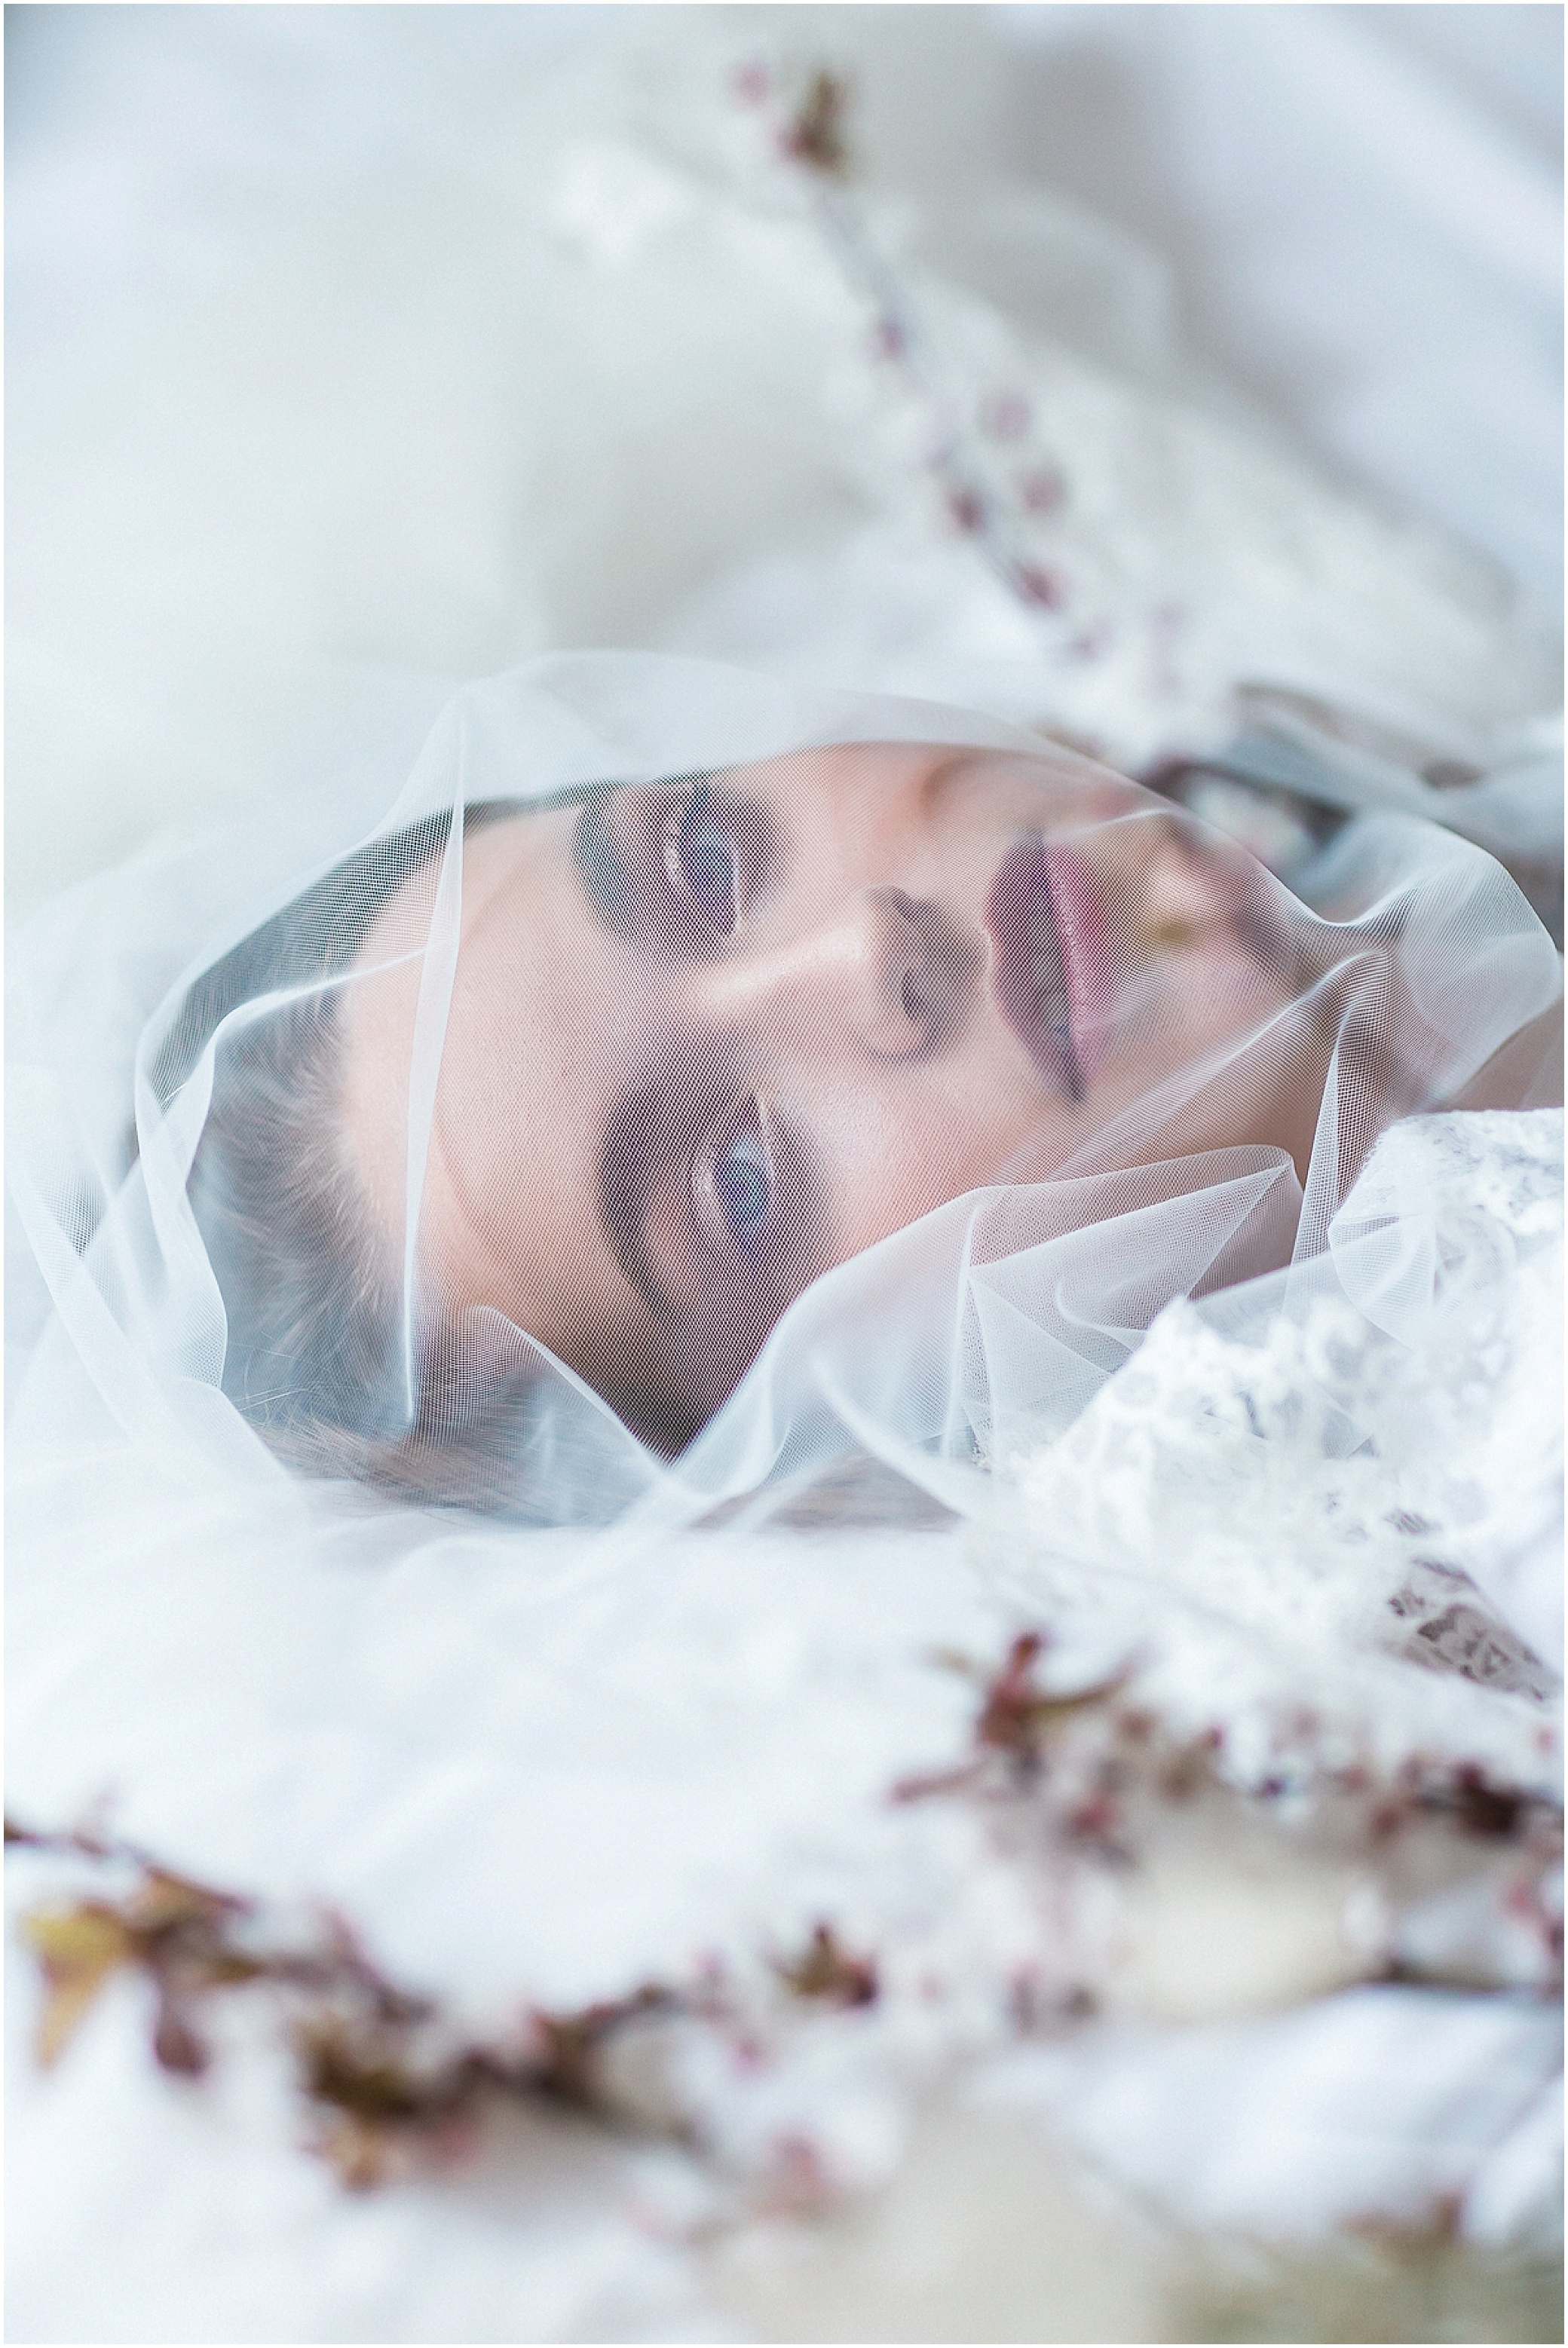 Model bride wearing veil over face